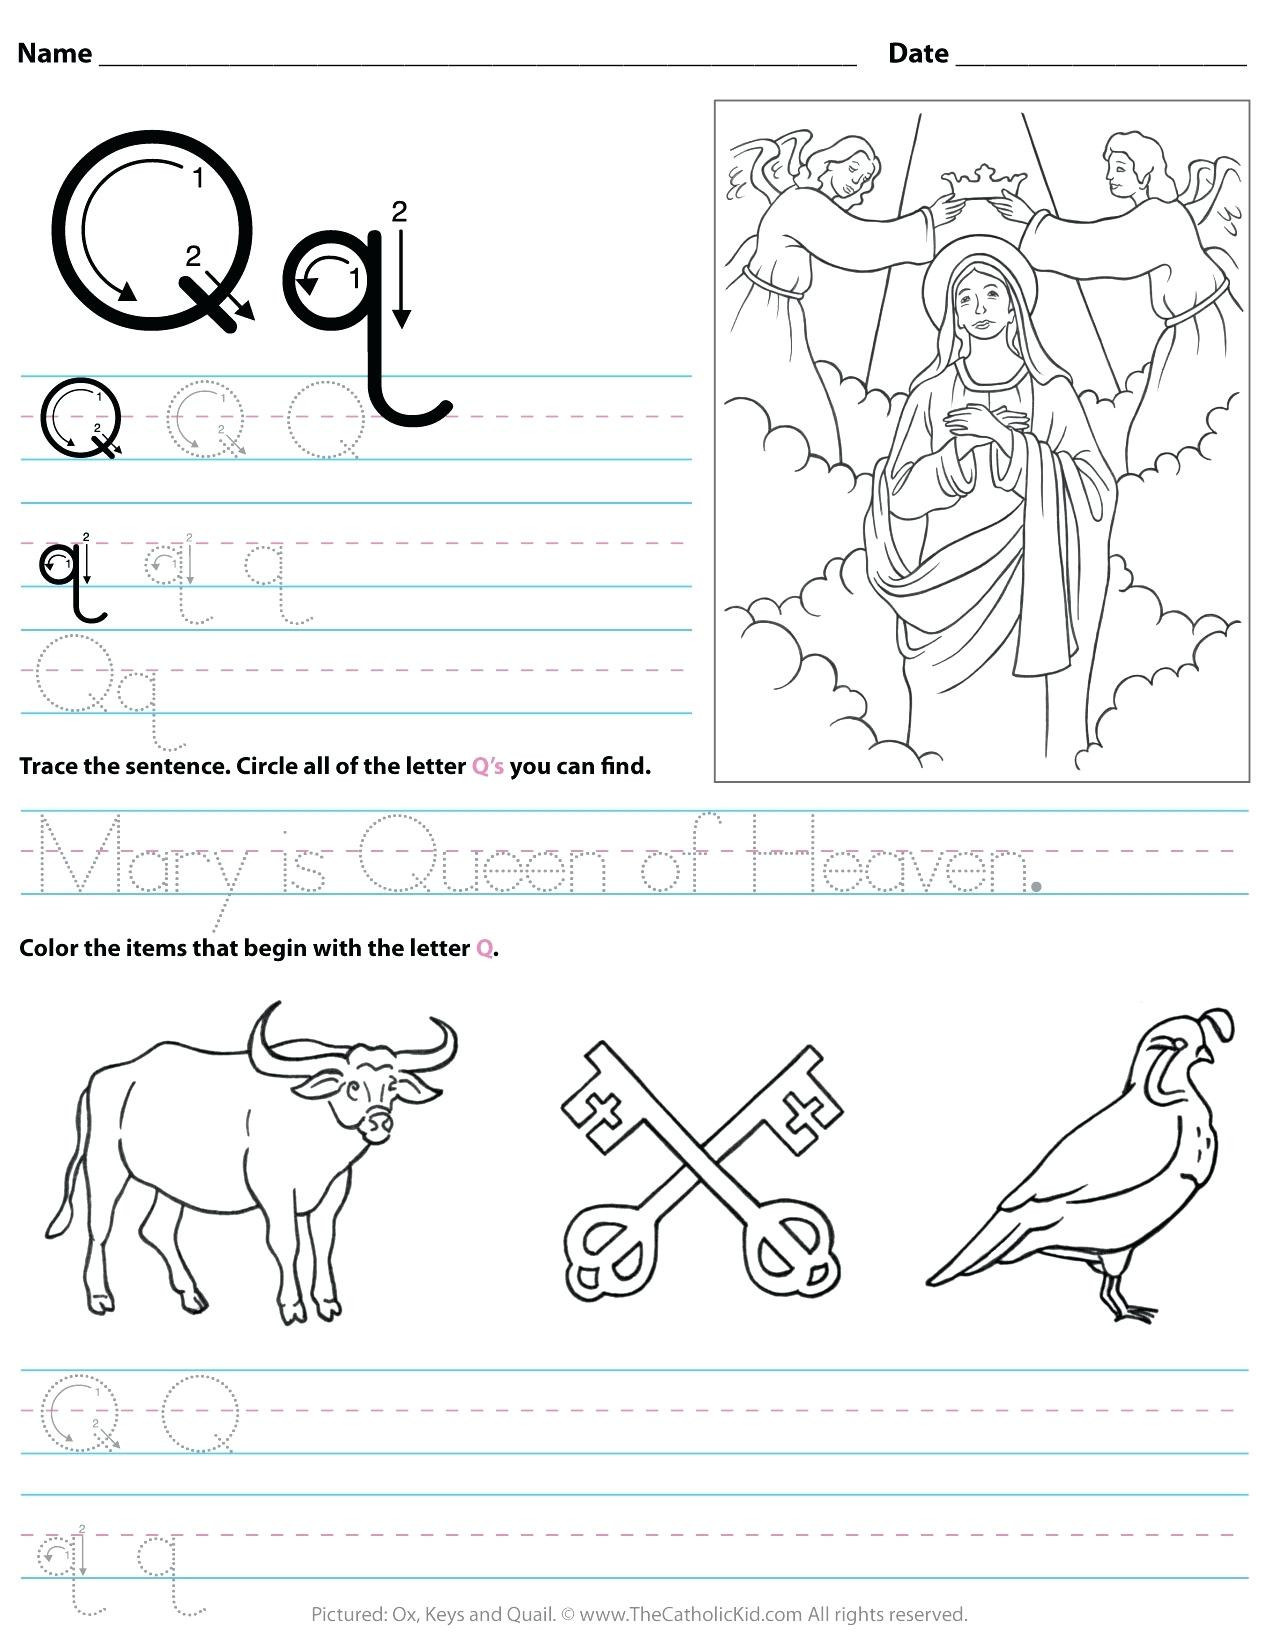 F Worksheets for Preschool Letter Find Worksheets for Preschoolers Mojaordinacija